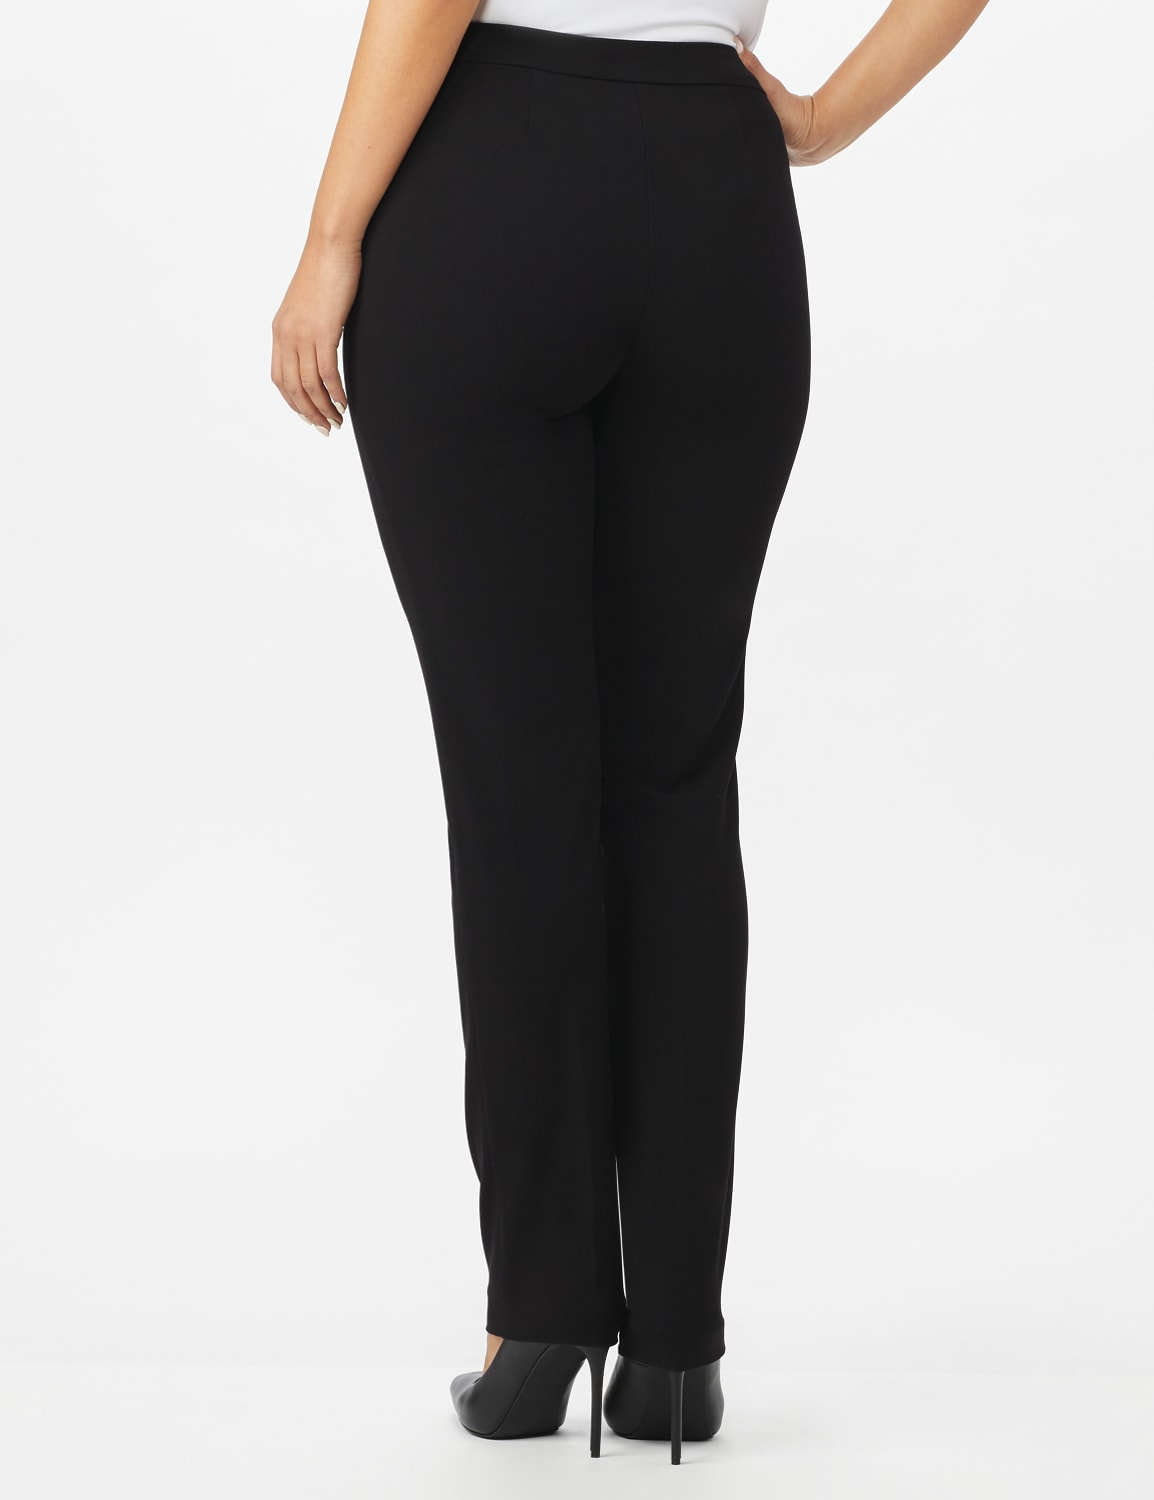 Roz & Ali Secret Agent Pull On Pant with Pockets - Short Length - Black - Back